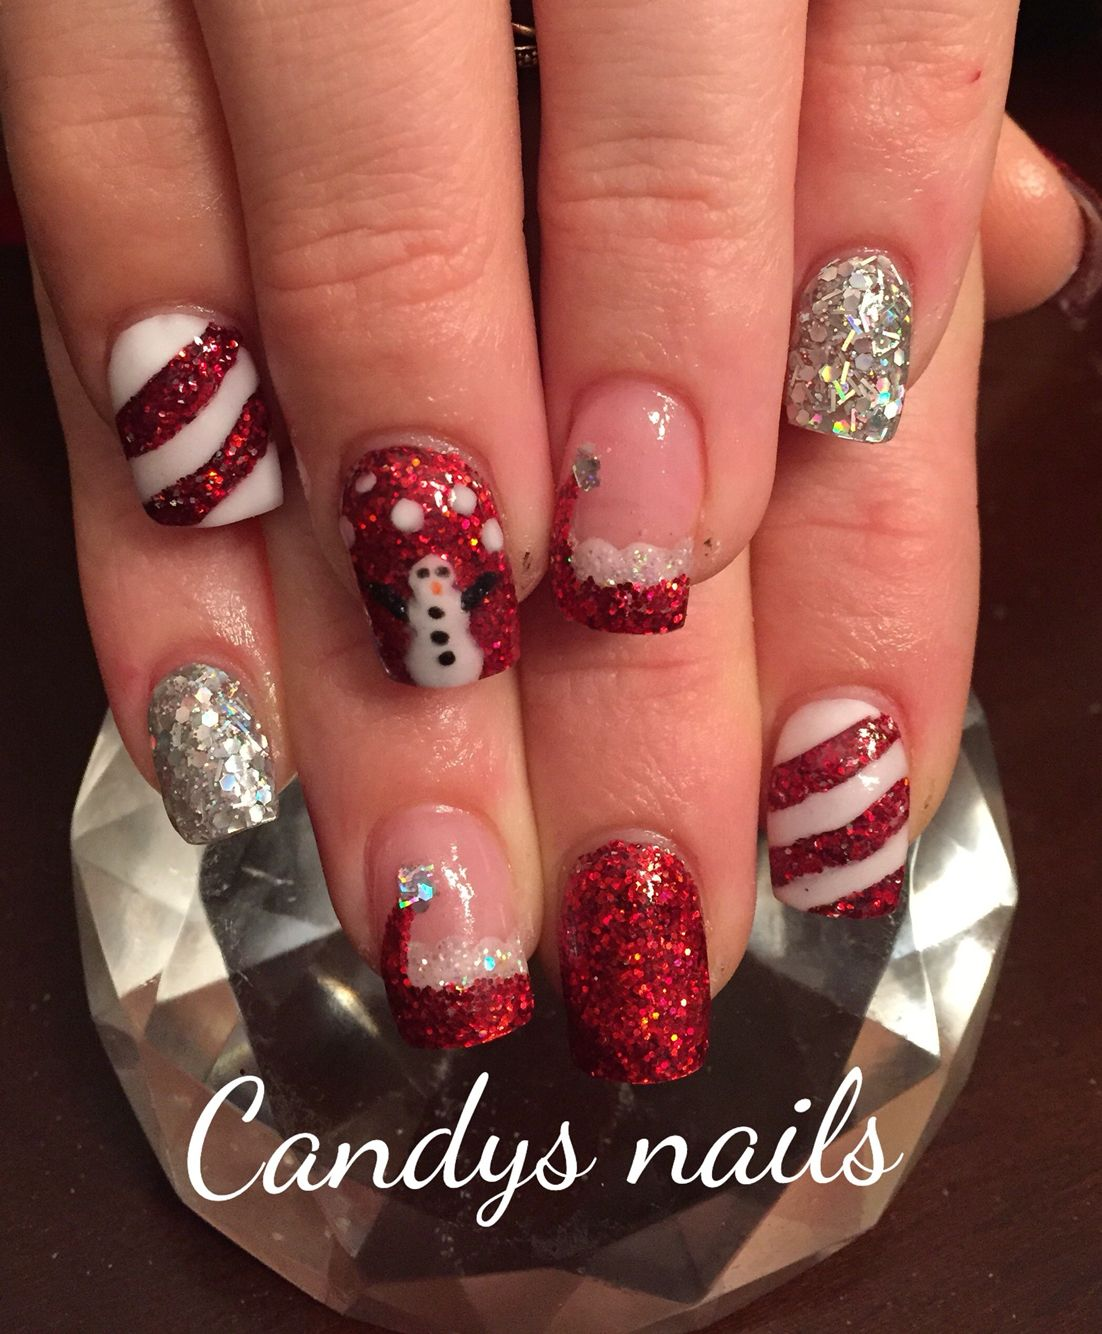 Christmas Acrylic Nails With A Snowman And Santa Hat And Candy Cane Stripes Nail Candy Christmas Nails Acrylic Nails